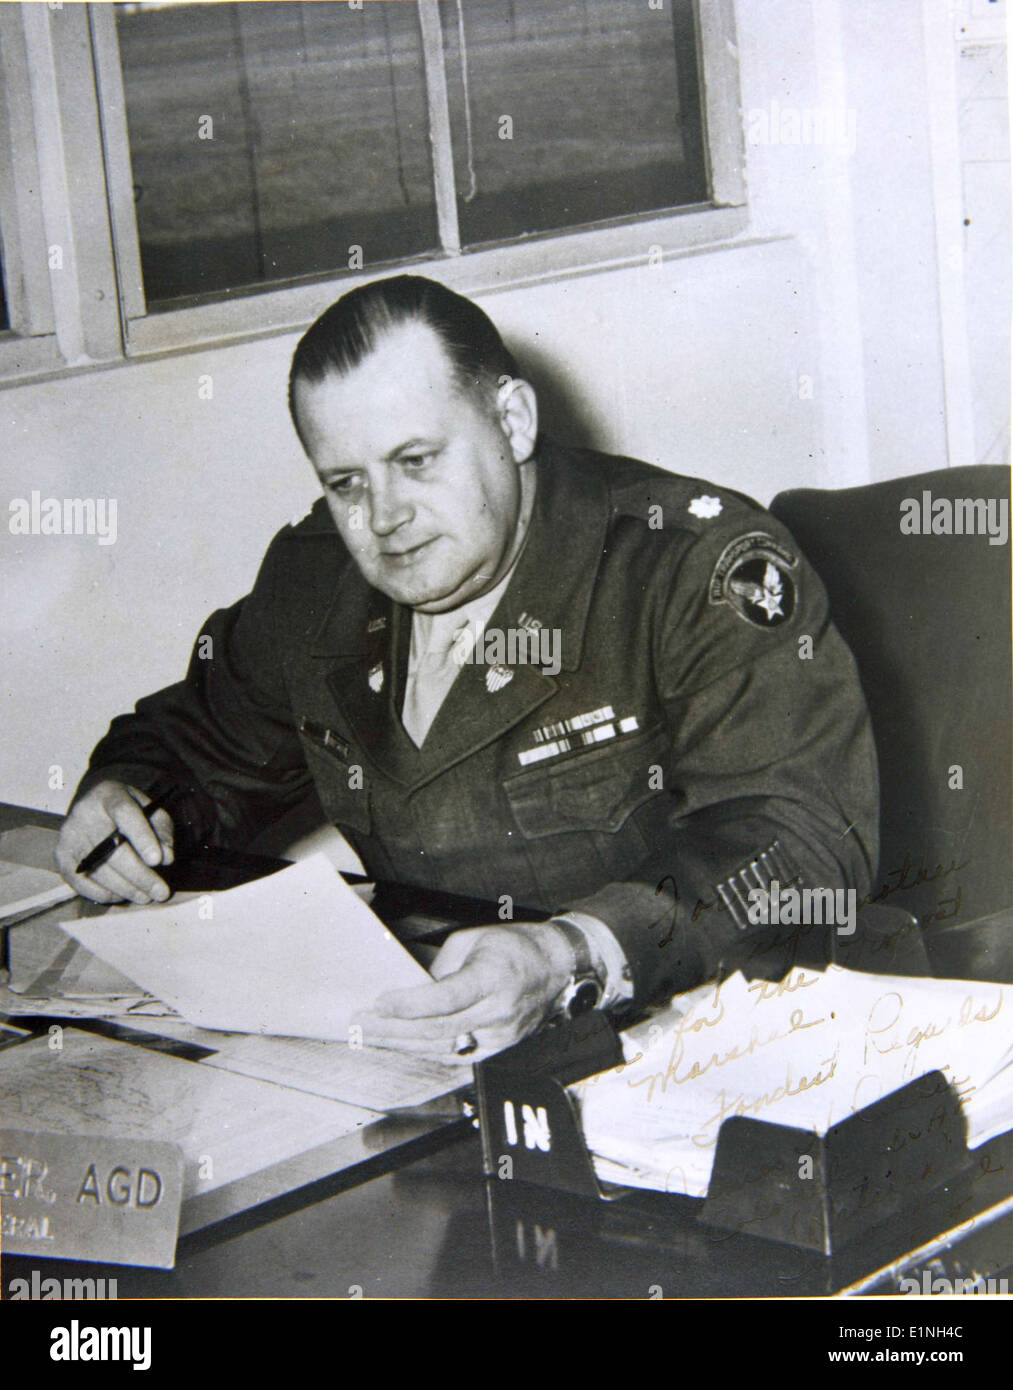 Capt. Forrest Blalock Special Collection Photo Picture is signed, ''Forrie, Thinking up another job for the Prooost Marshal. Fondest Regards, James. H. Reiter Colonel USAF (Retired) {It's} wonderful. 2-25-56.'' - Stock Image